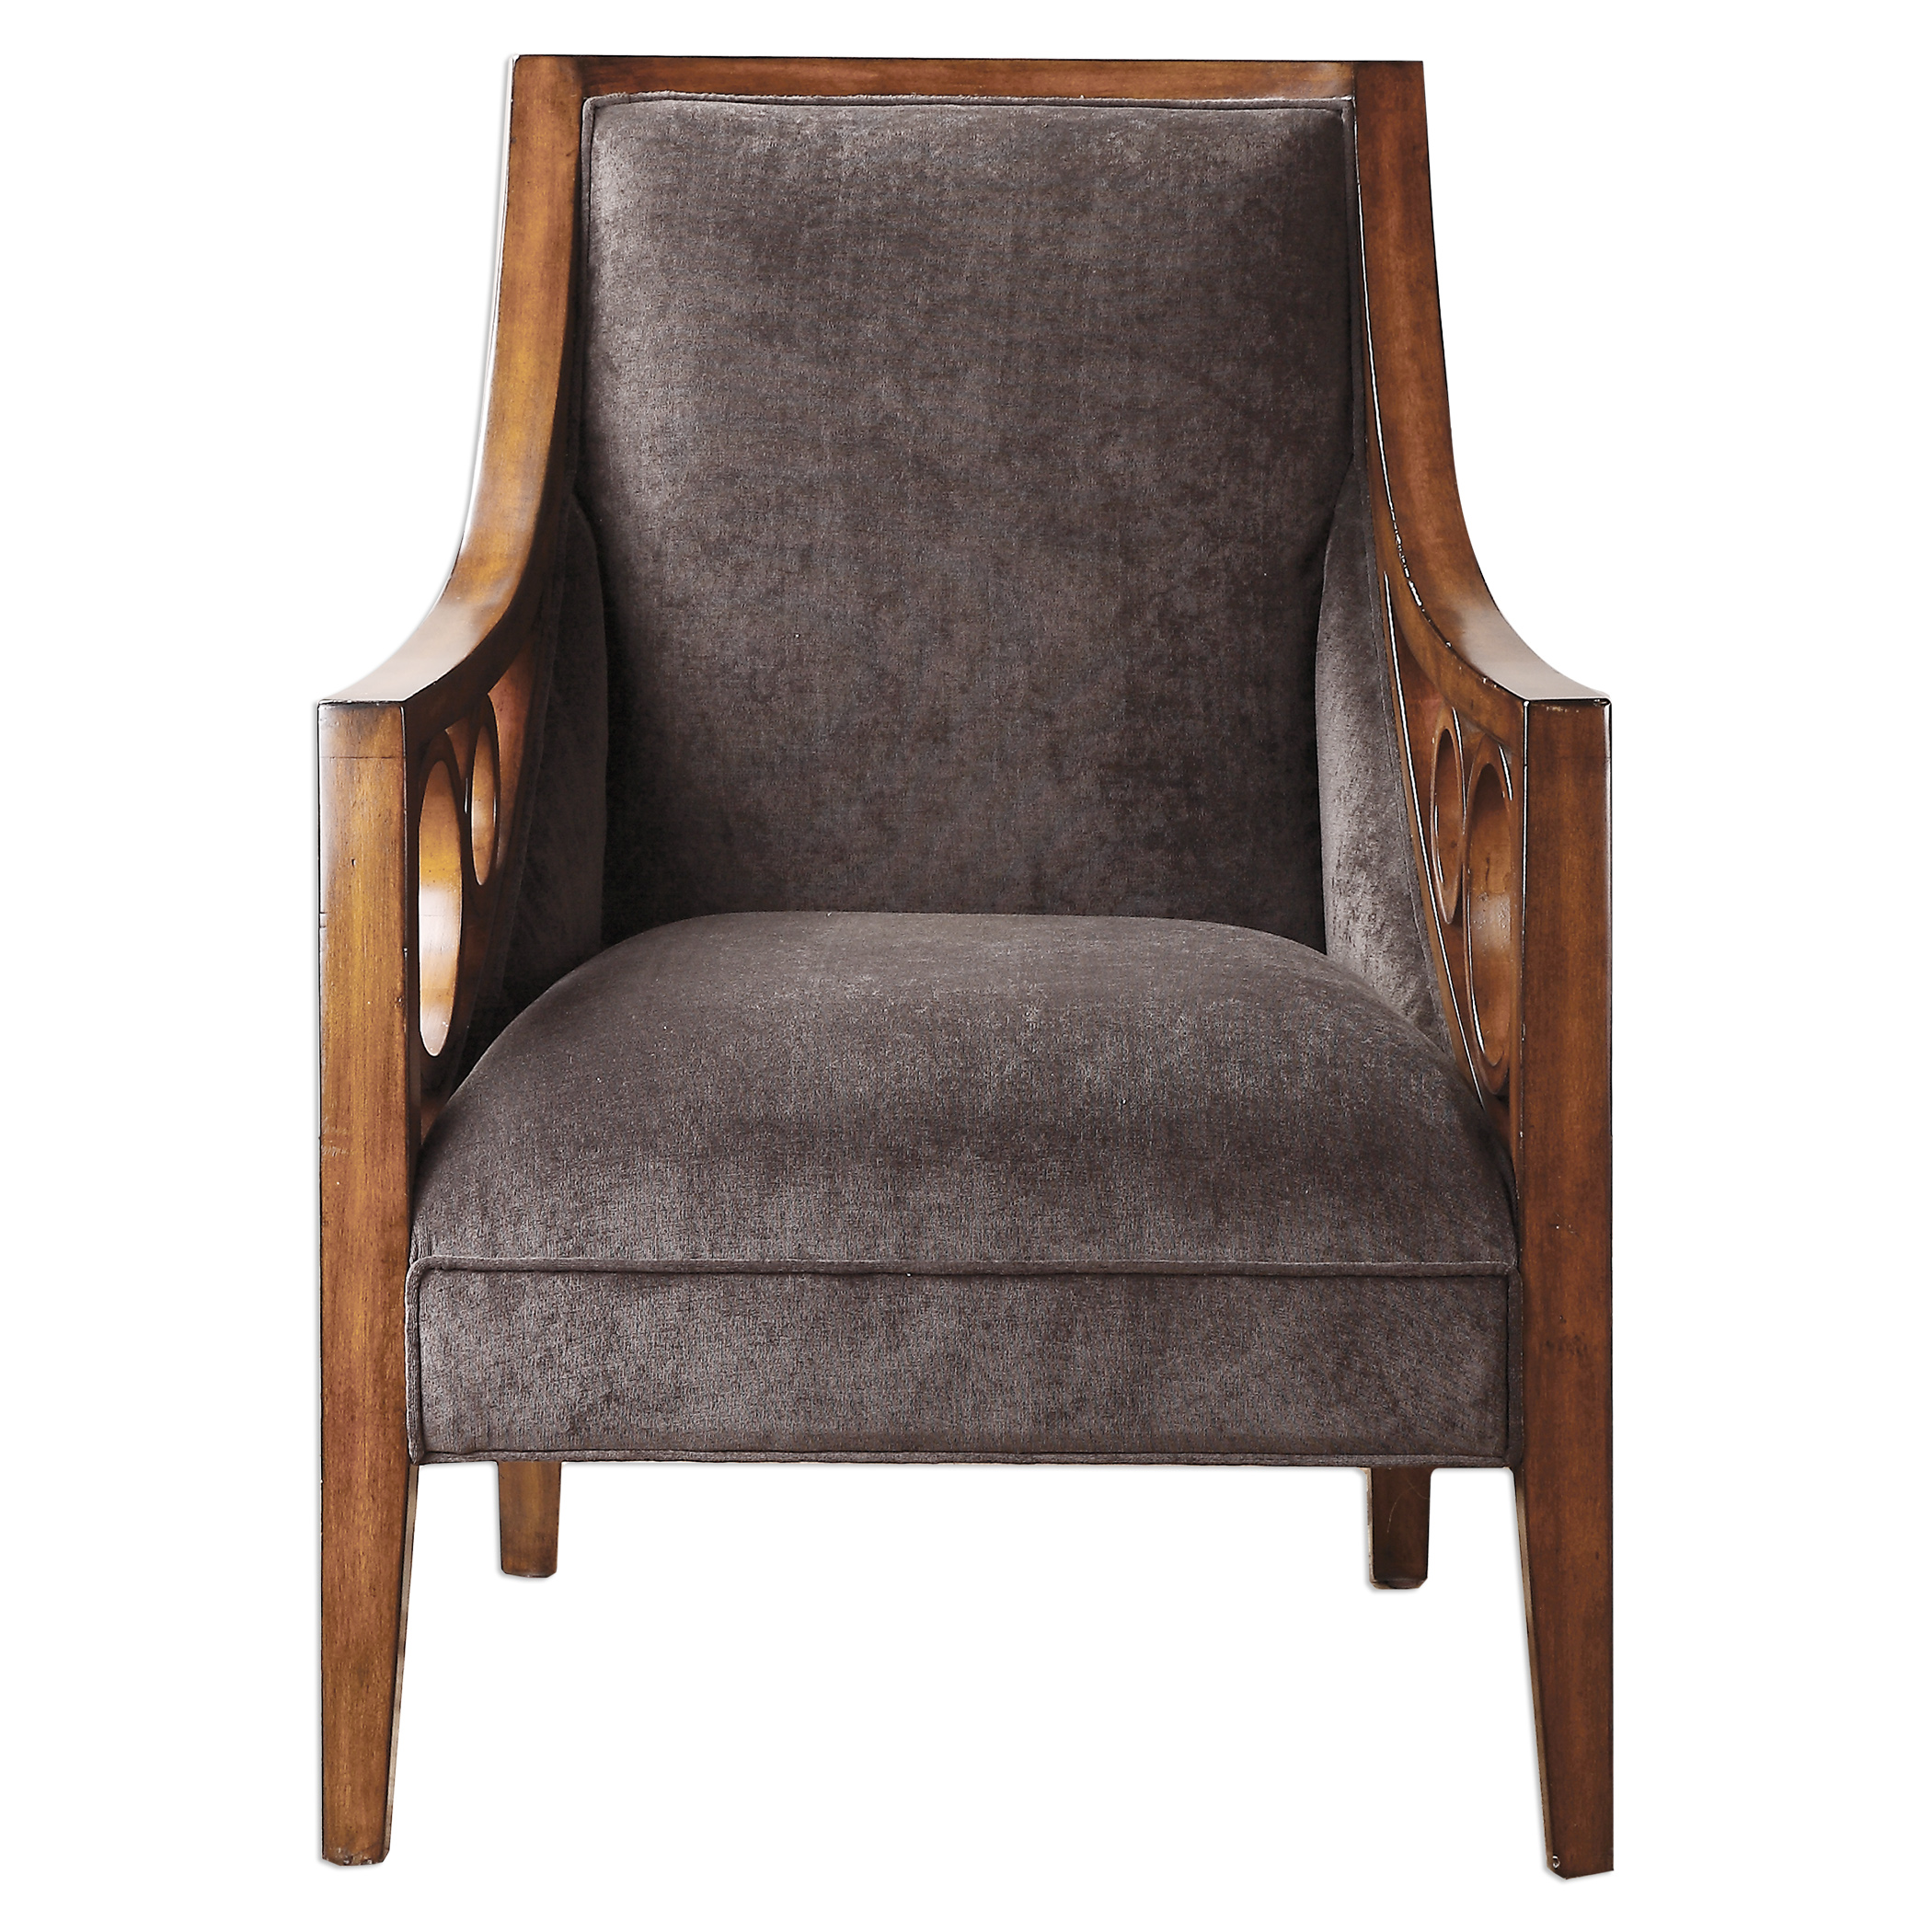 Uttermost Accent Furniture Maclean Brown Armchair - Item Number: 23274